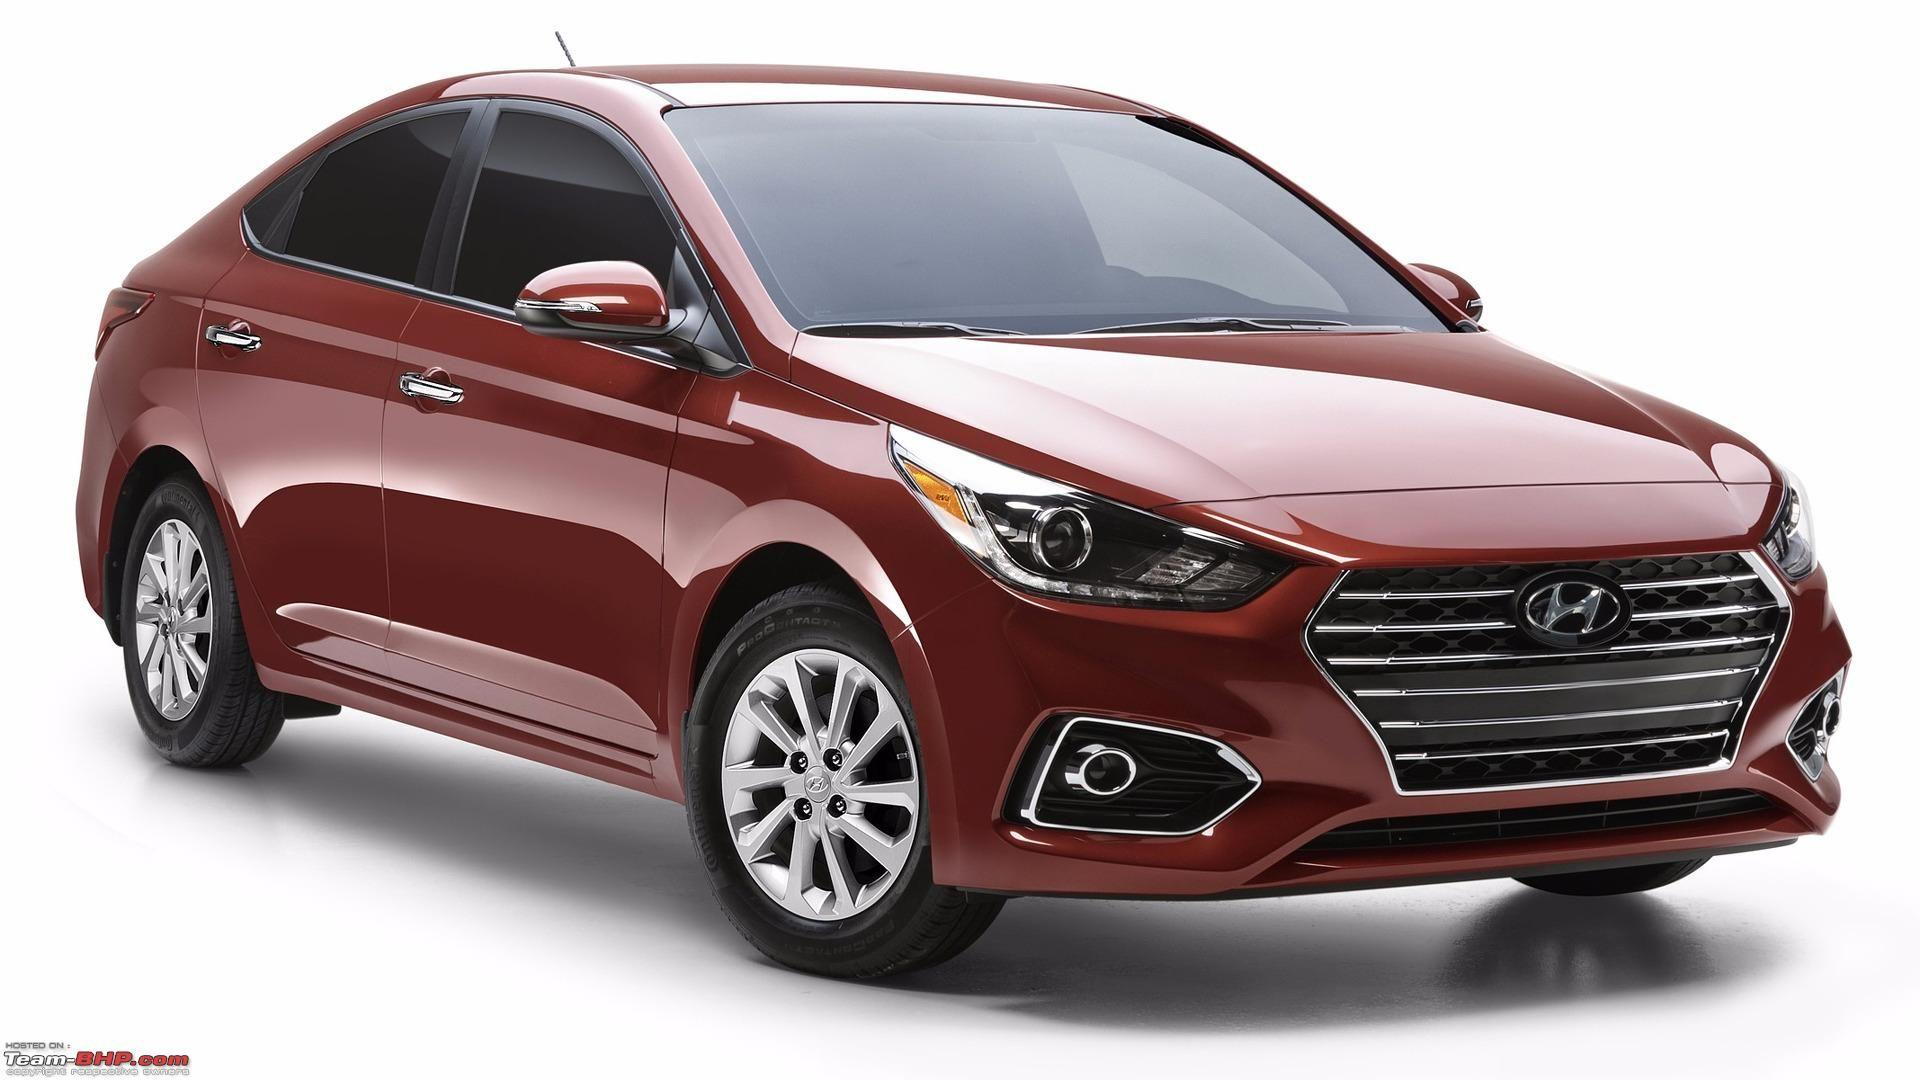 Hyundai Verna hd photos All Latest New model Wallpapers